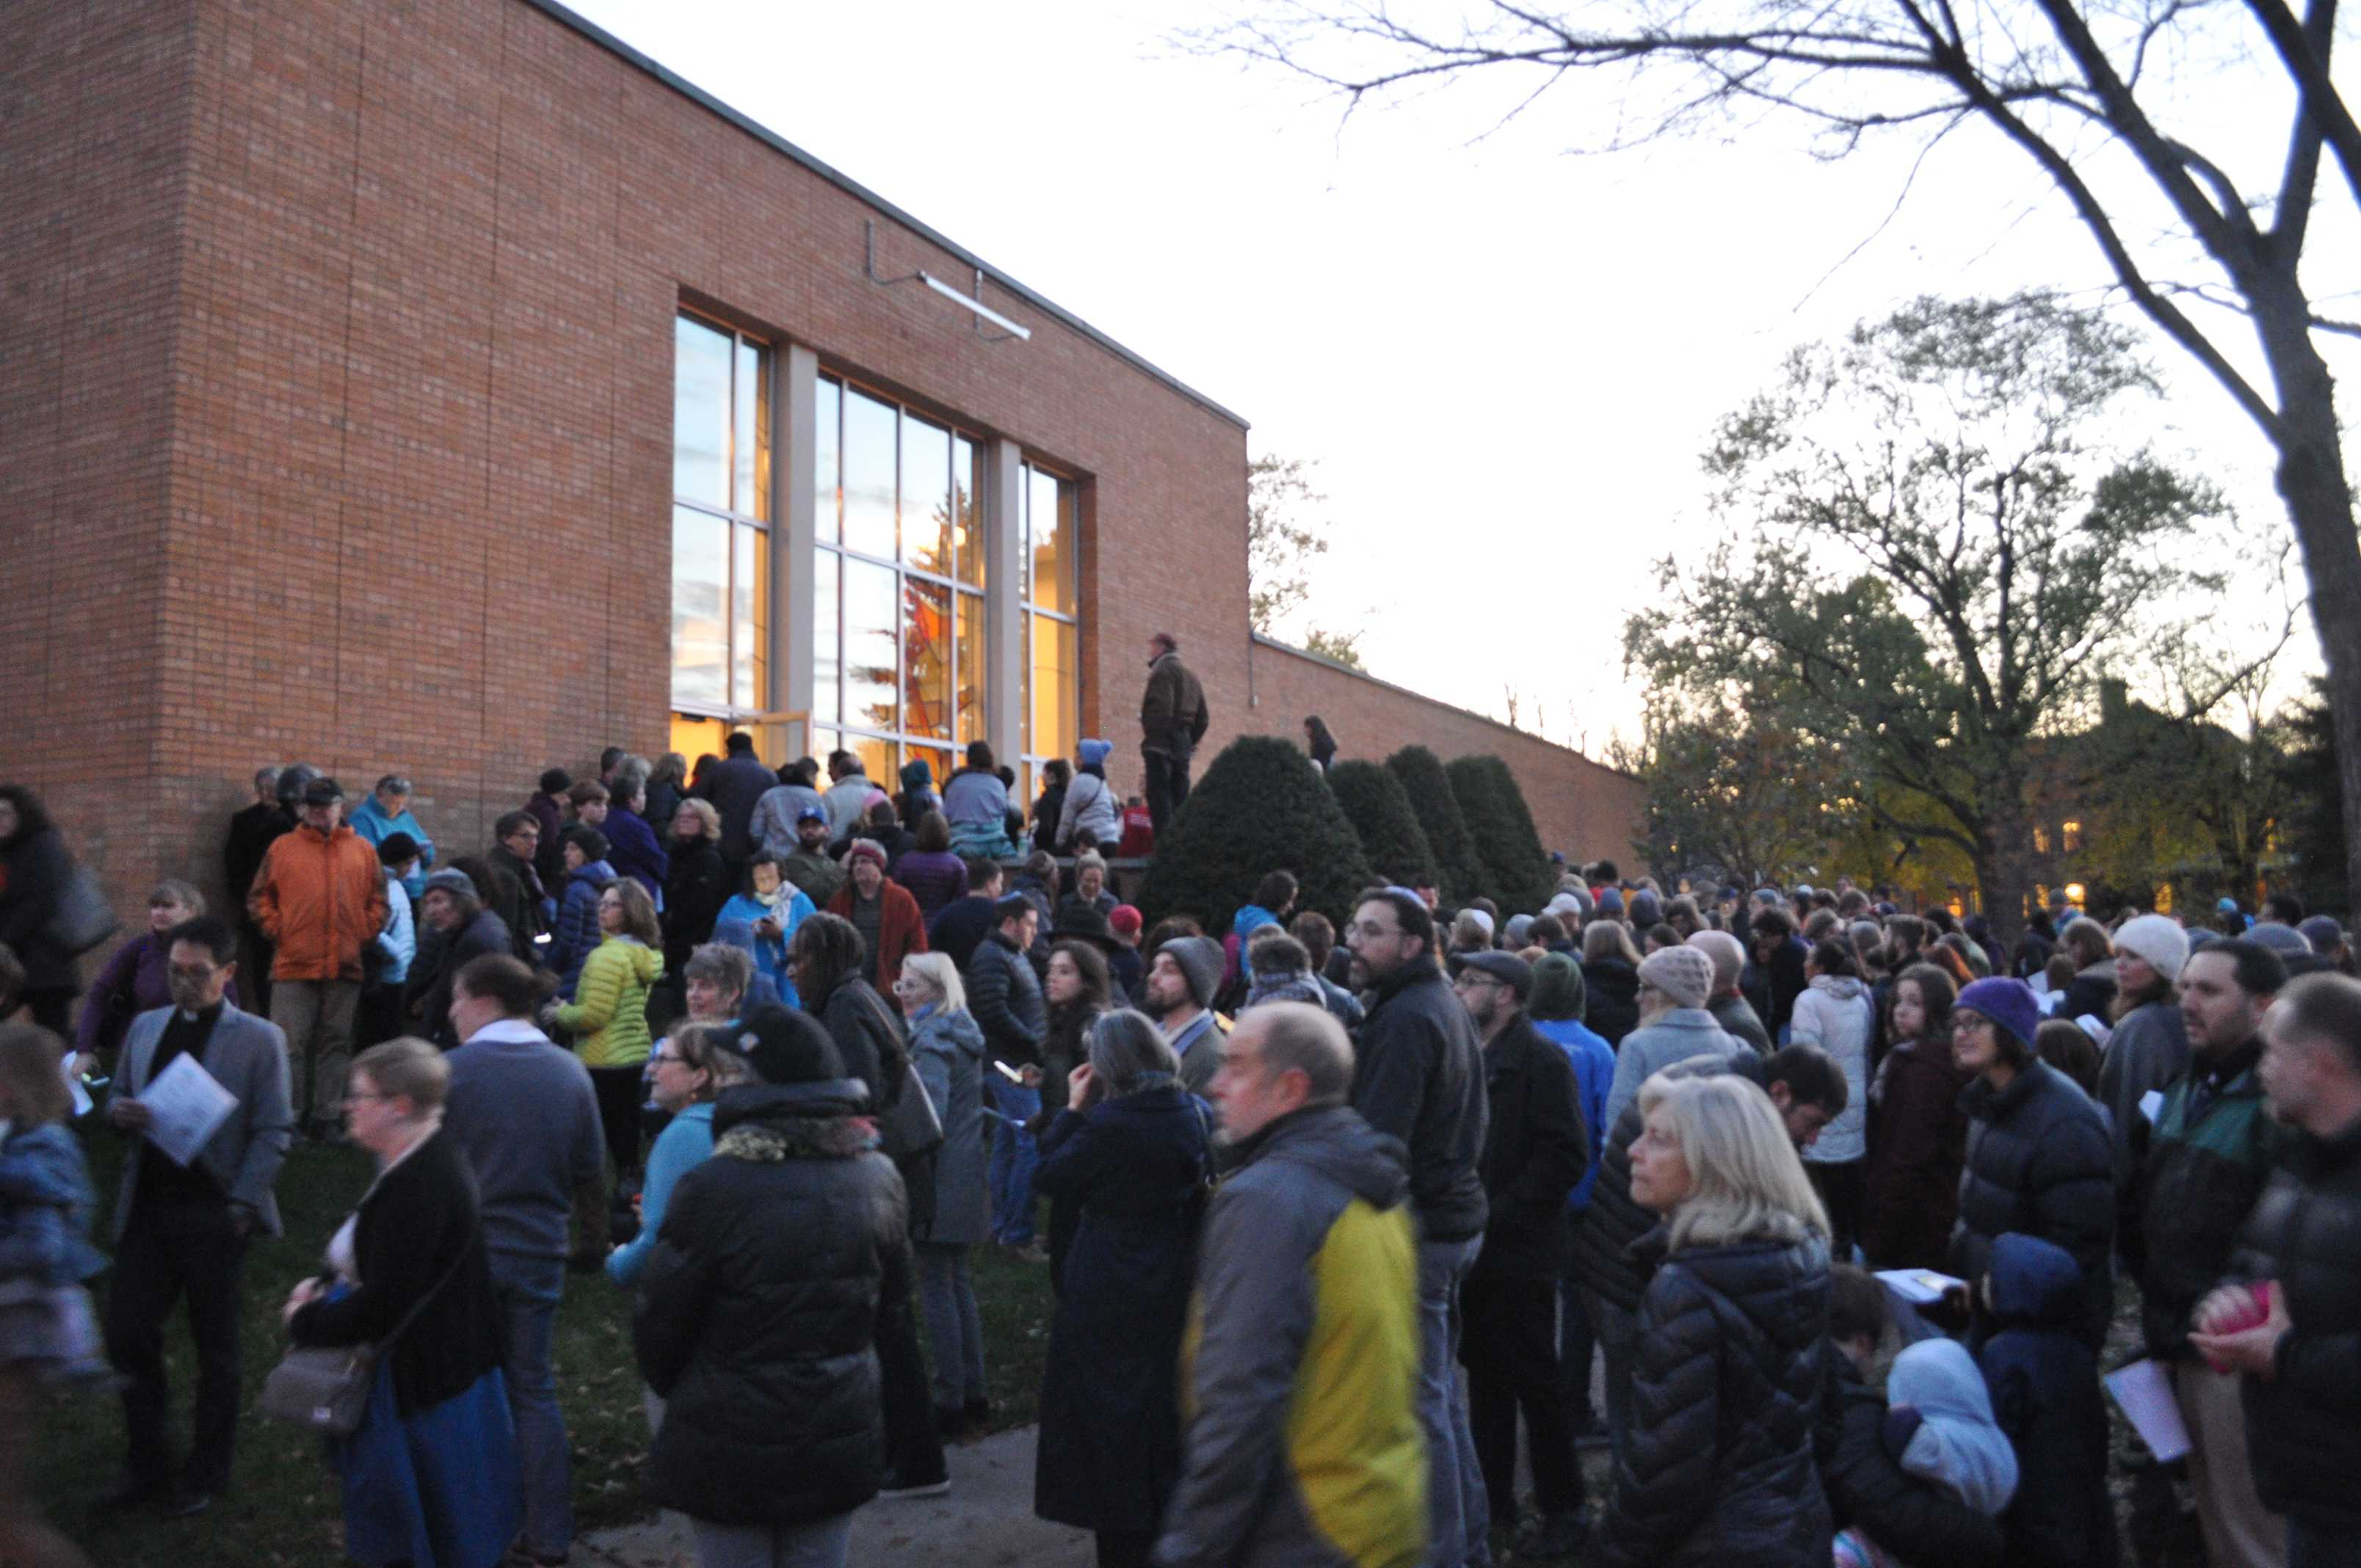 Crowd gathers outside Mount Zion Temple for interfaith vigil after anti-semitic attack kills 11. Photo by Malcom Cooke '21.